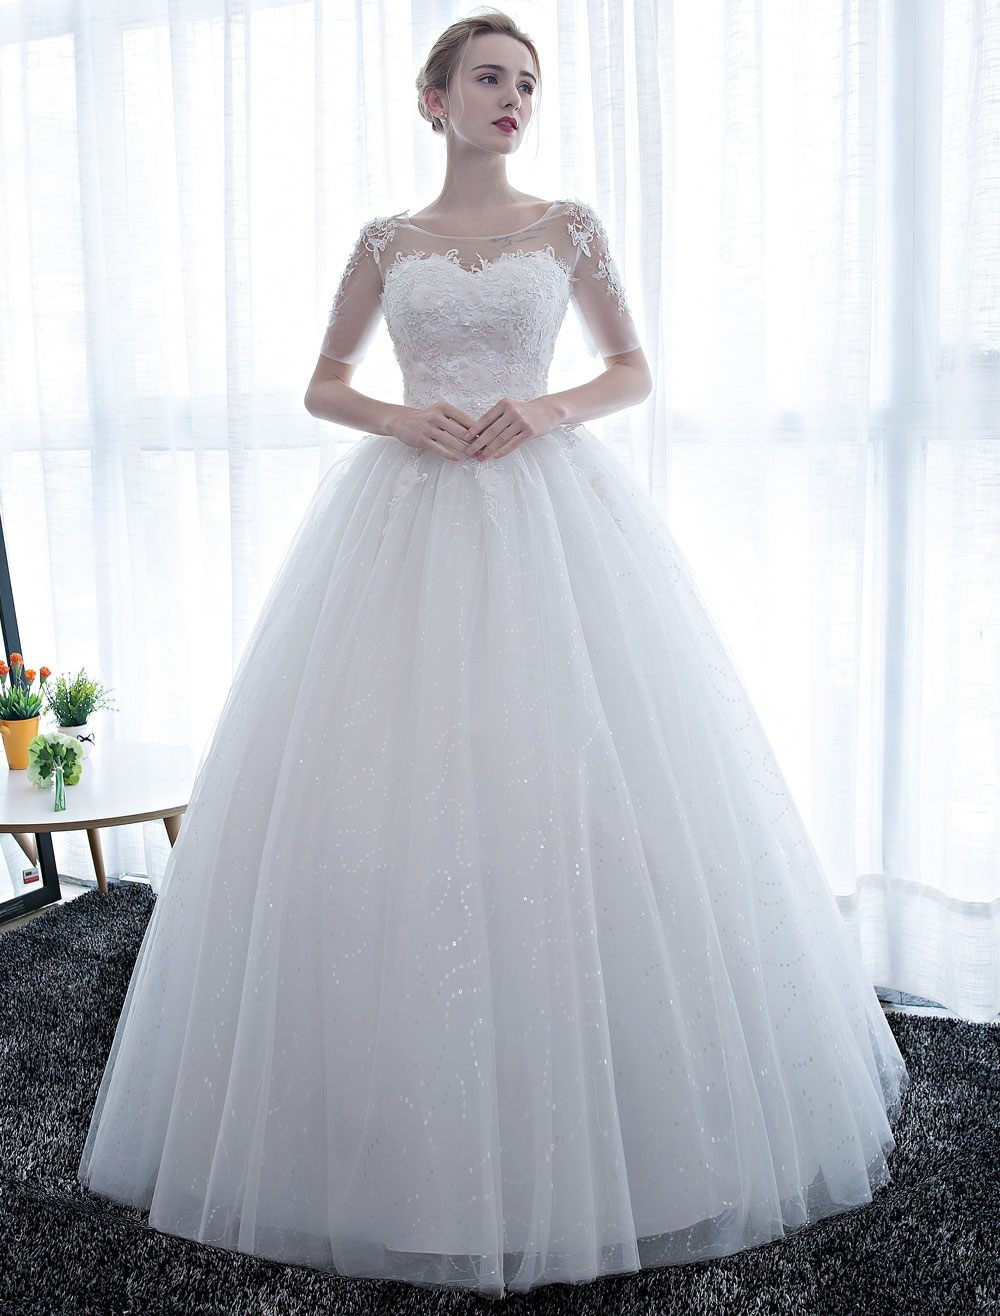 Ivory Wedding Dress Princess Ball Gown Bridal Half Sleeve Lace Applique Pearls Beaded Sweetheart Floor